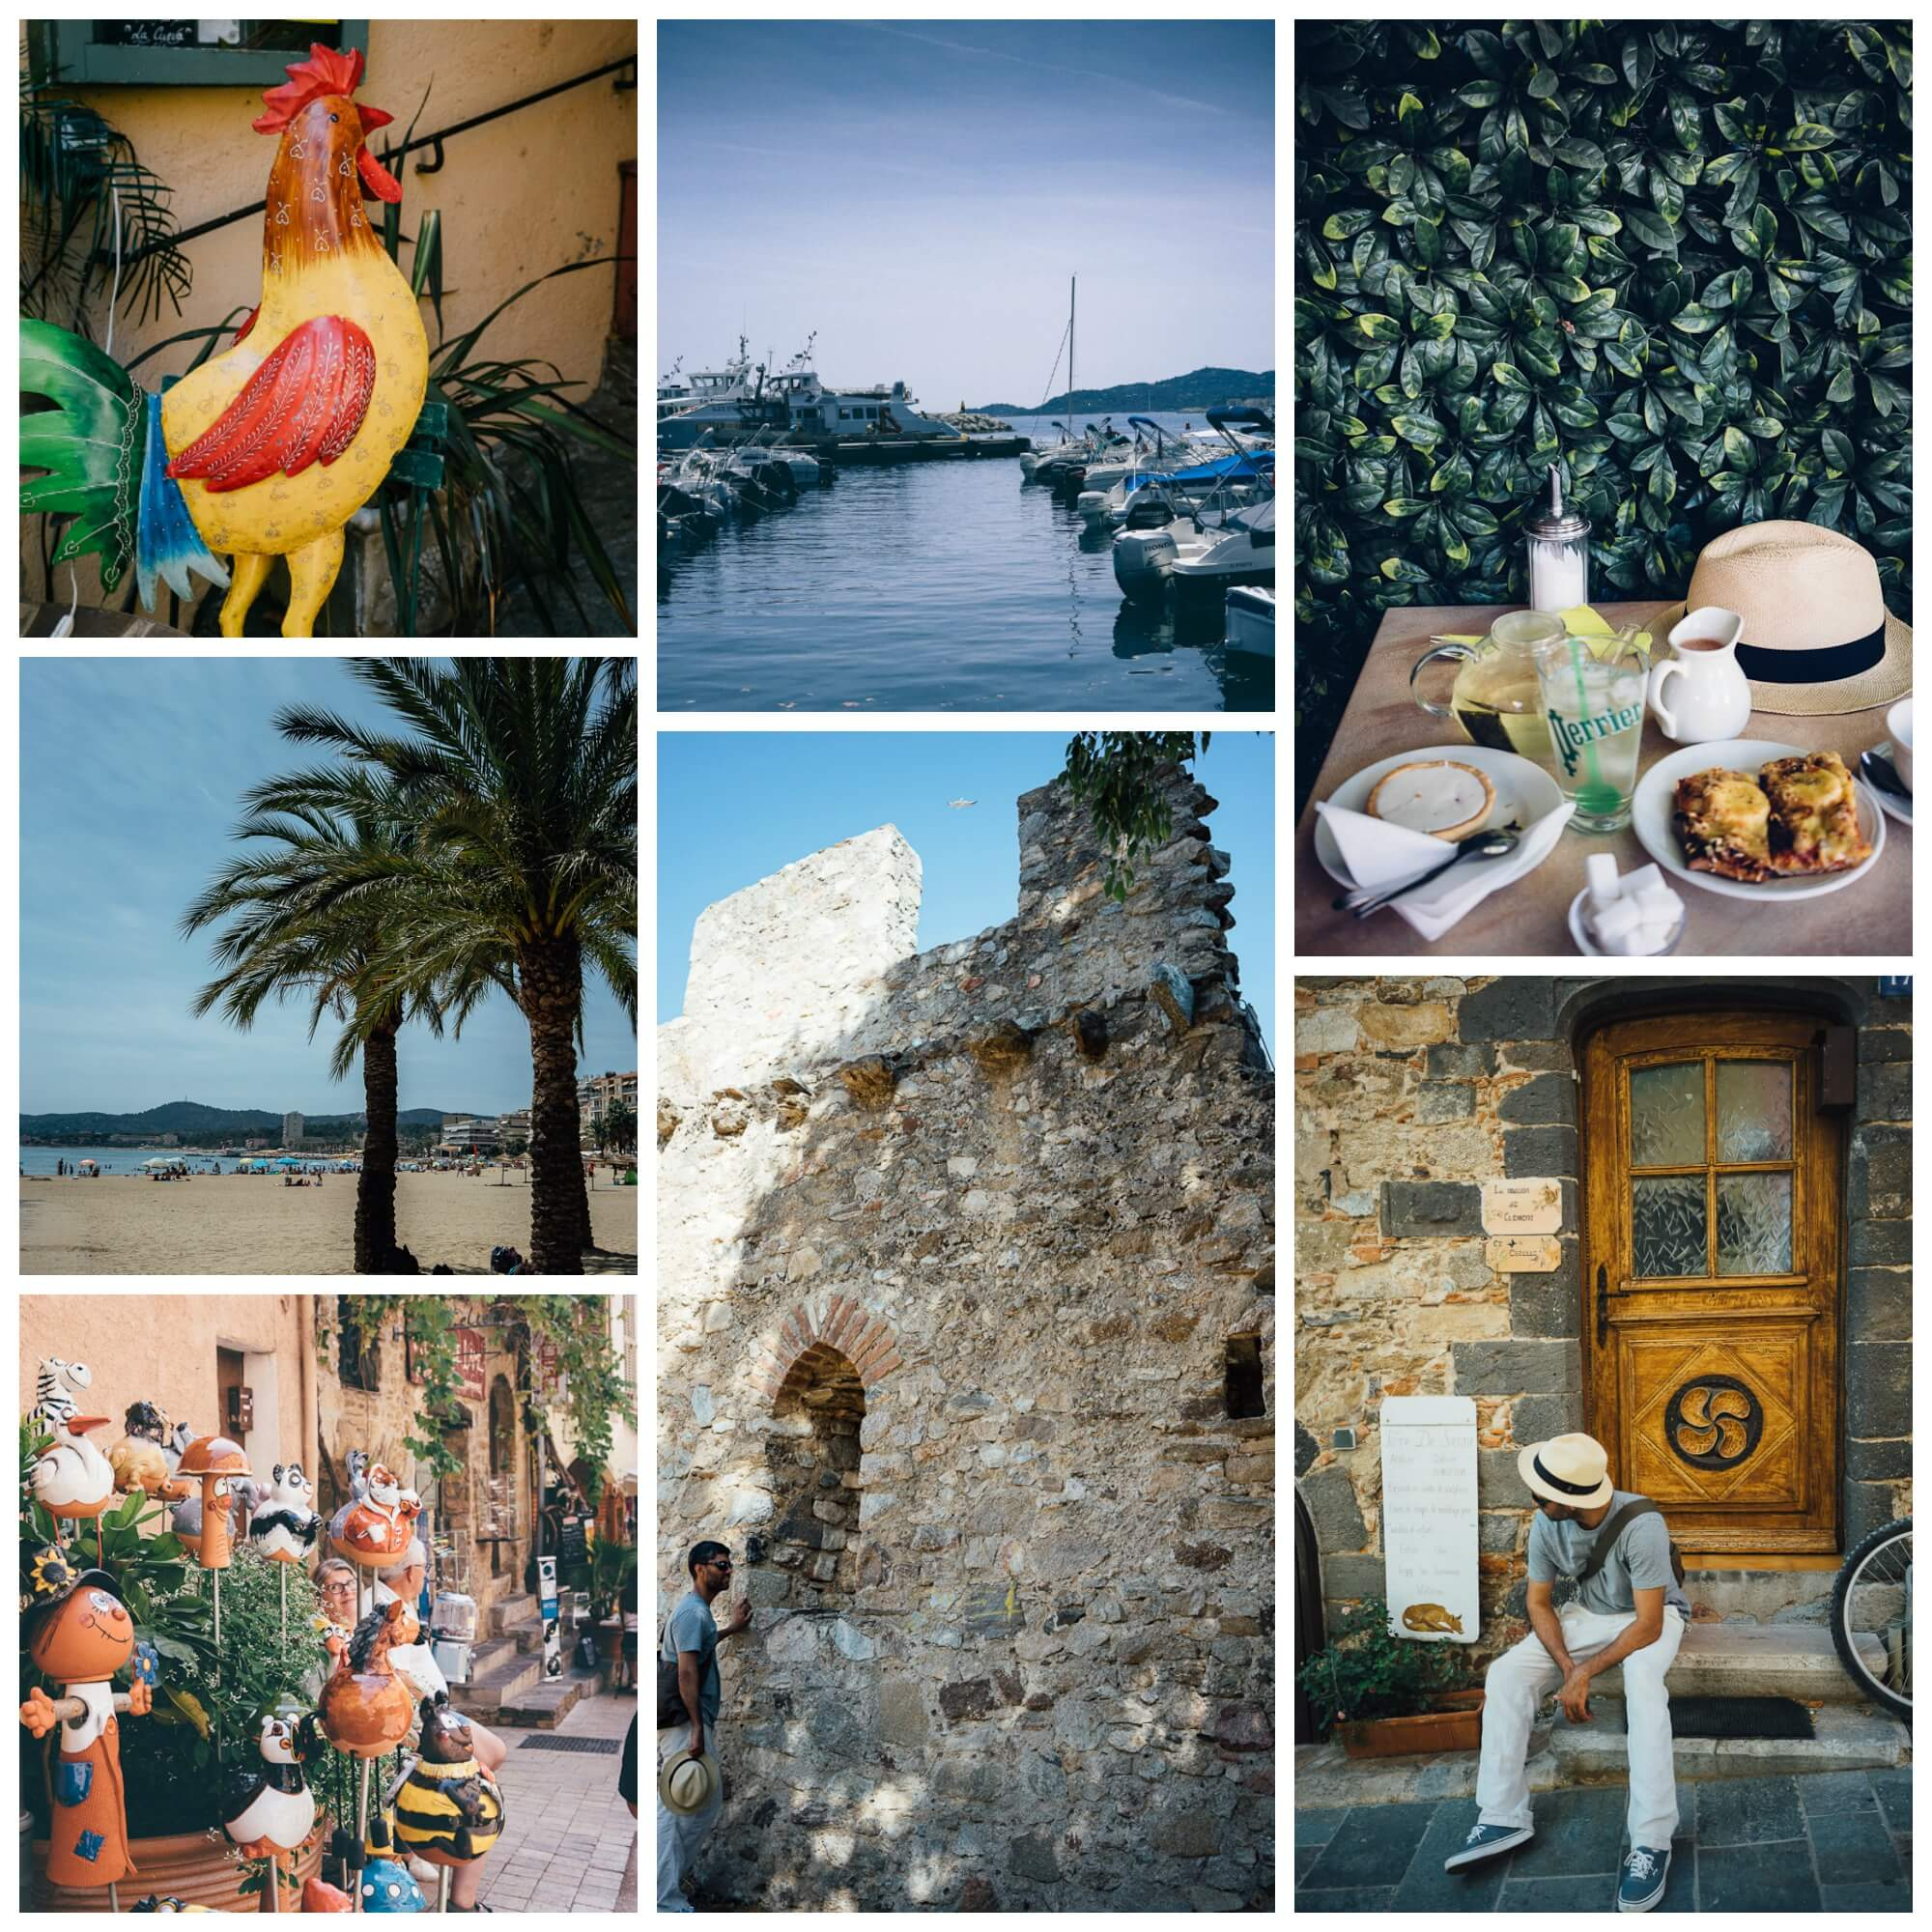 Things to do in St Tropez. Day trips from St. Tropez